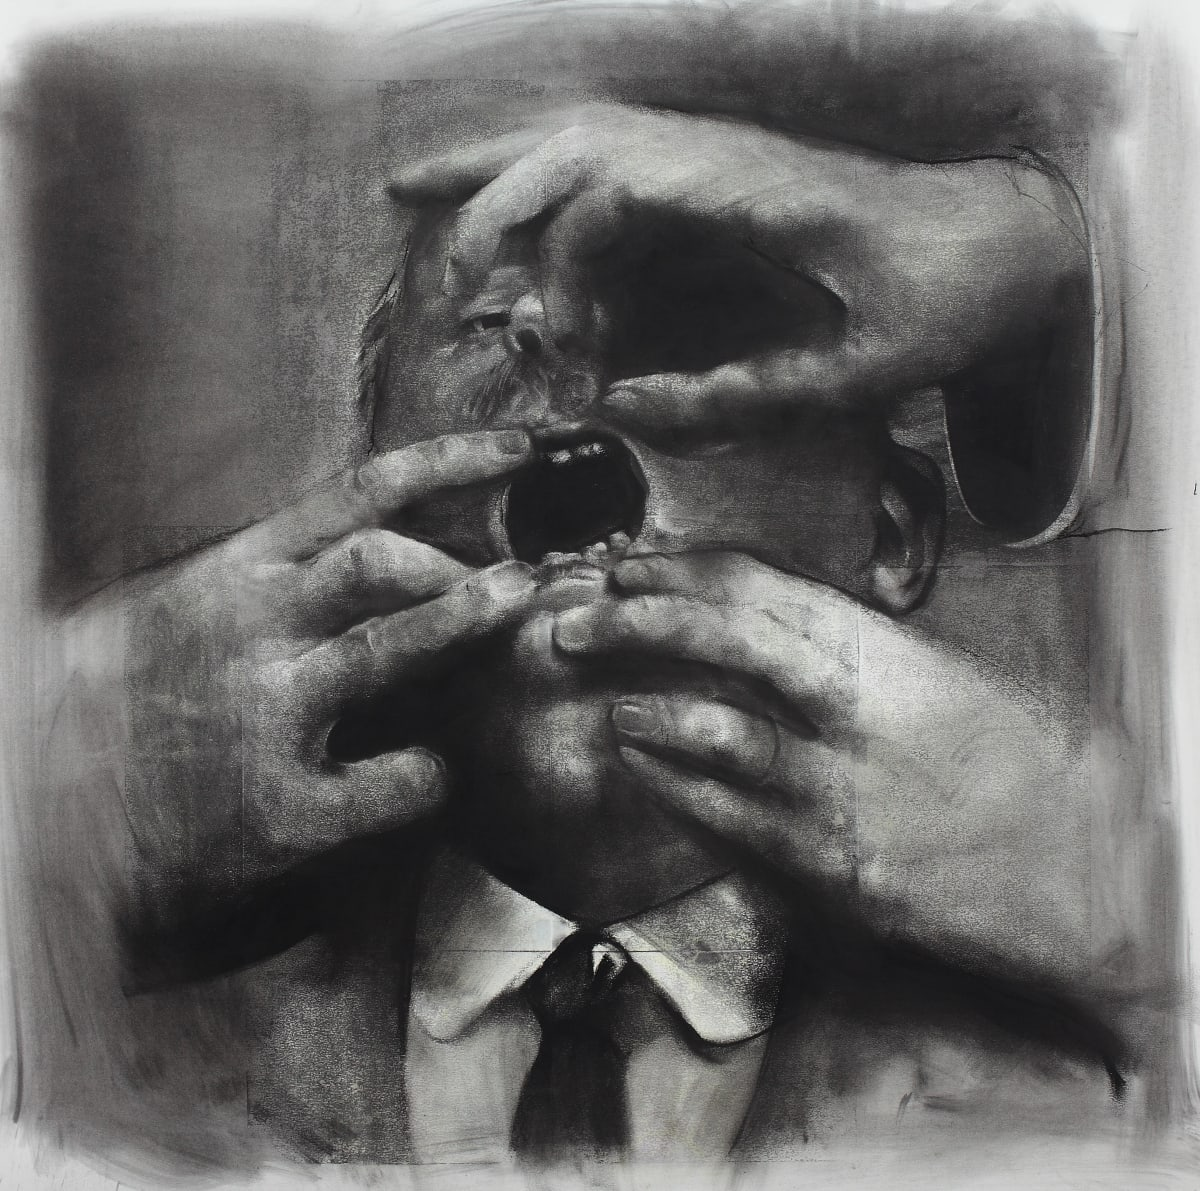 Mircea Suciu, 'Honest Truth', 2012 Charcoal and ink on paper, 71 x 77 cm.